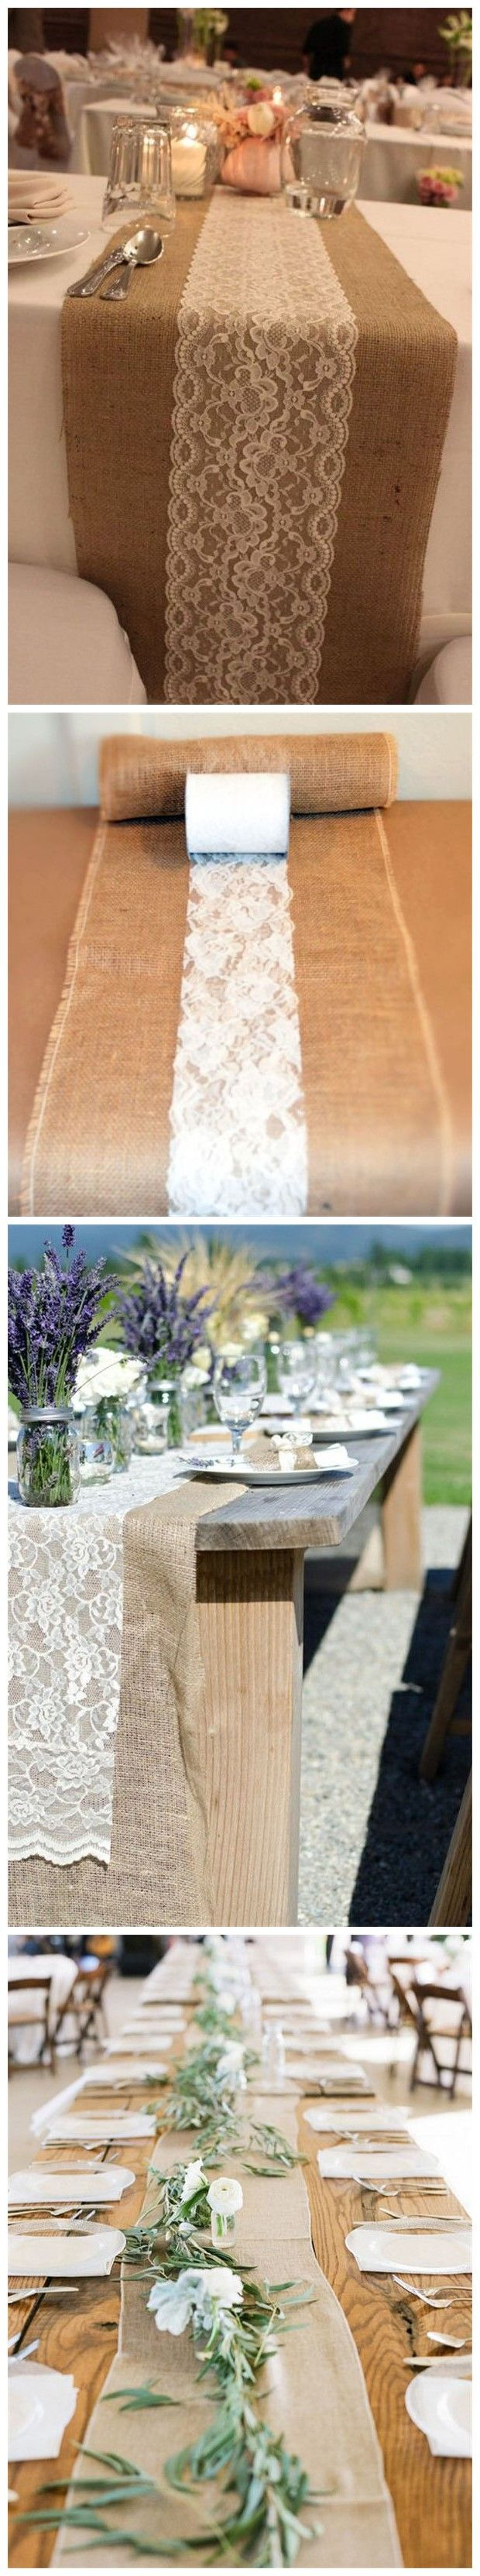 Diy Wedding Ideas » 22 Rustic Burlap Wedding Table Runner Ideas You Will Love » ❤️ See more: http://www.weddinginclude.com/2017/03/rustic-burlap-wedding-table-runner-ideas-you-will-love/